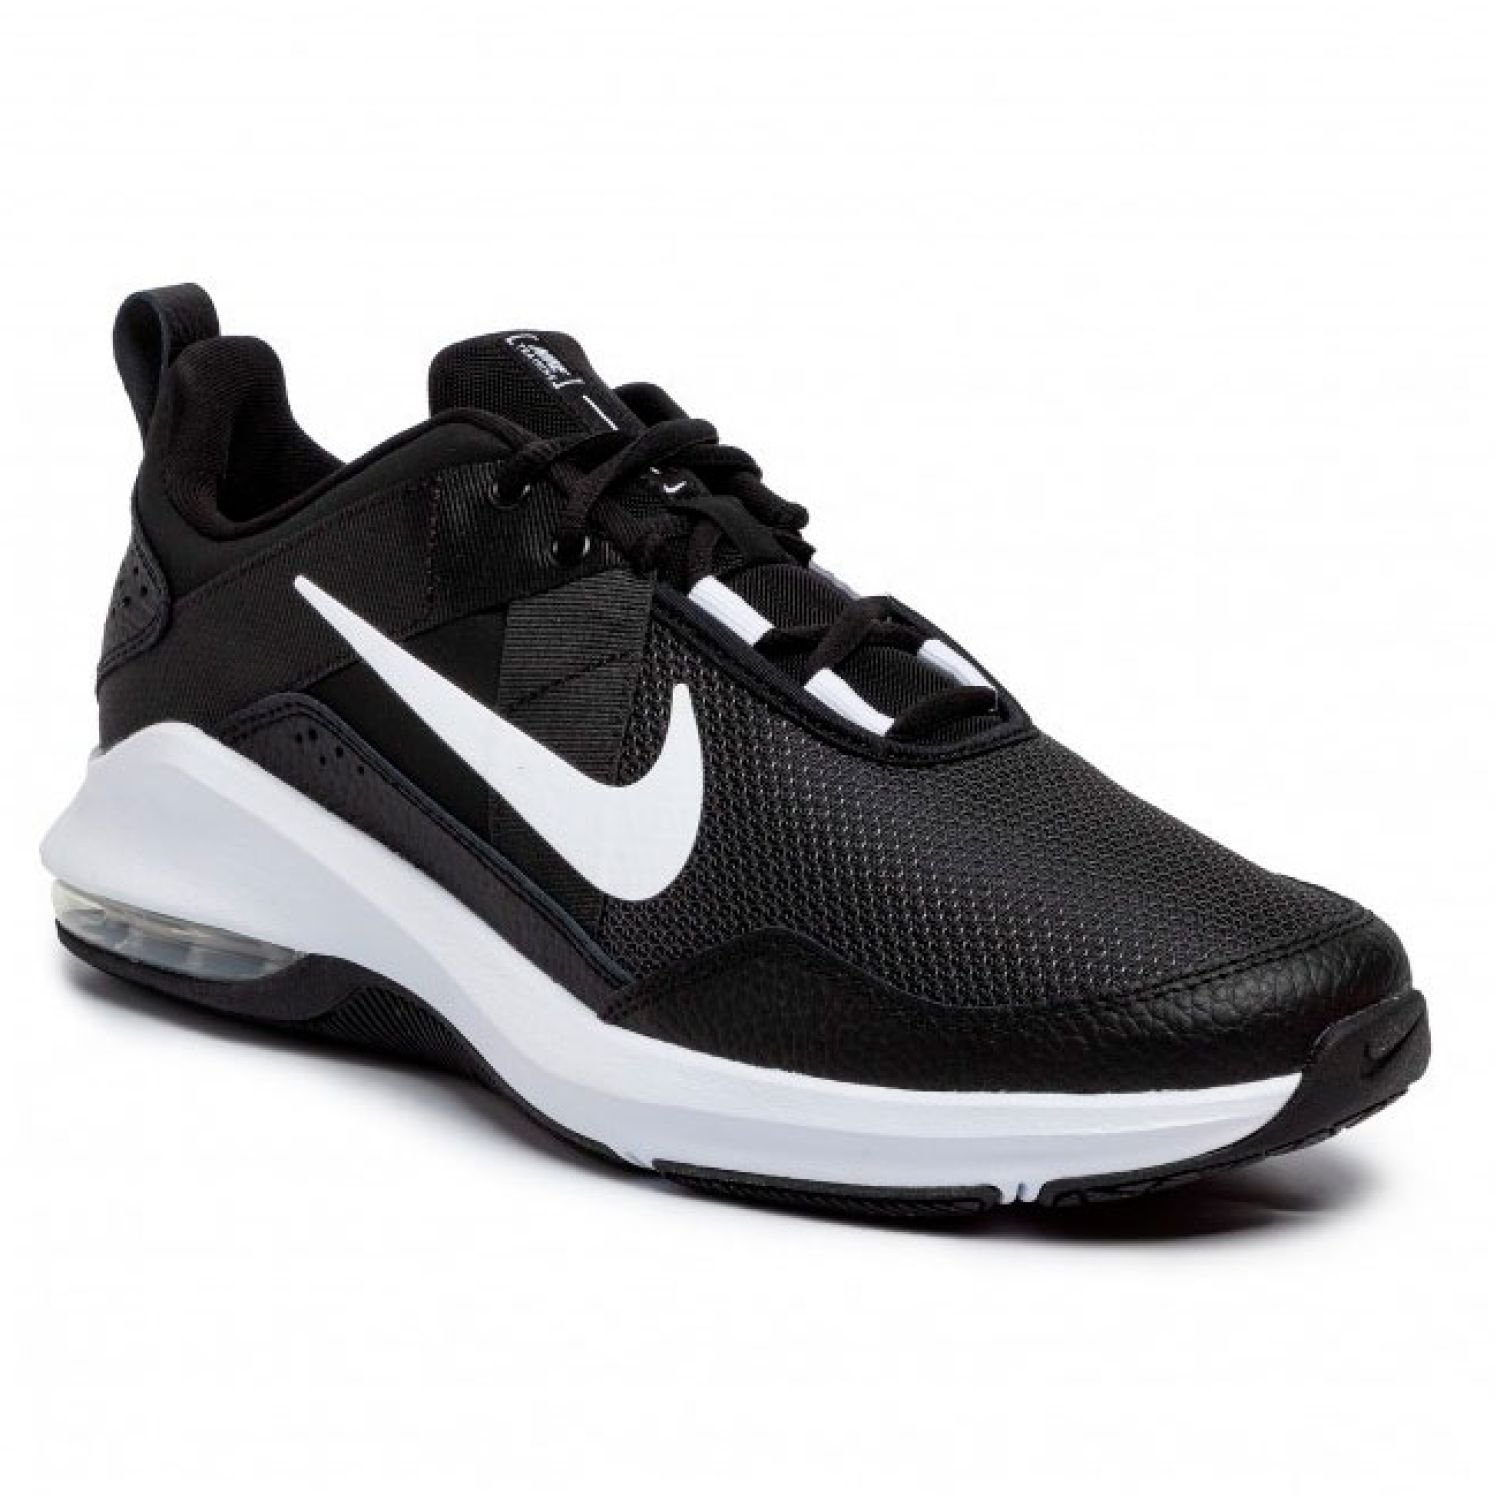 Nike nike air max alpha trainer 2 Negro / blanco Hombres